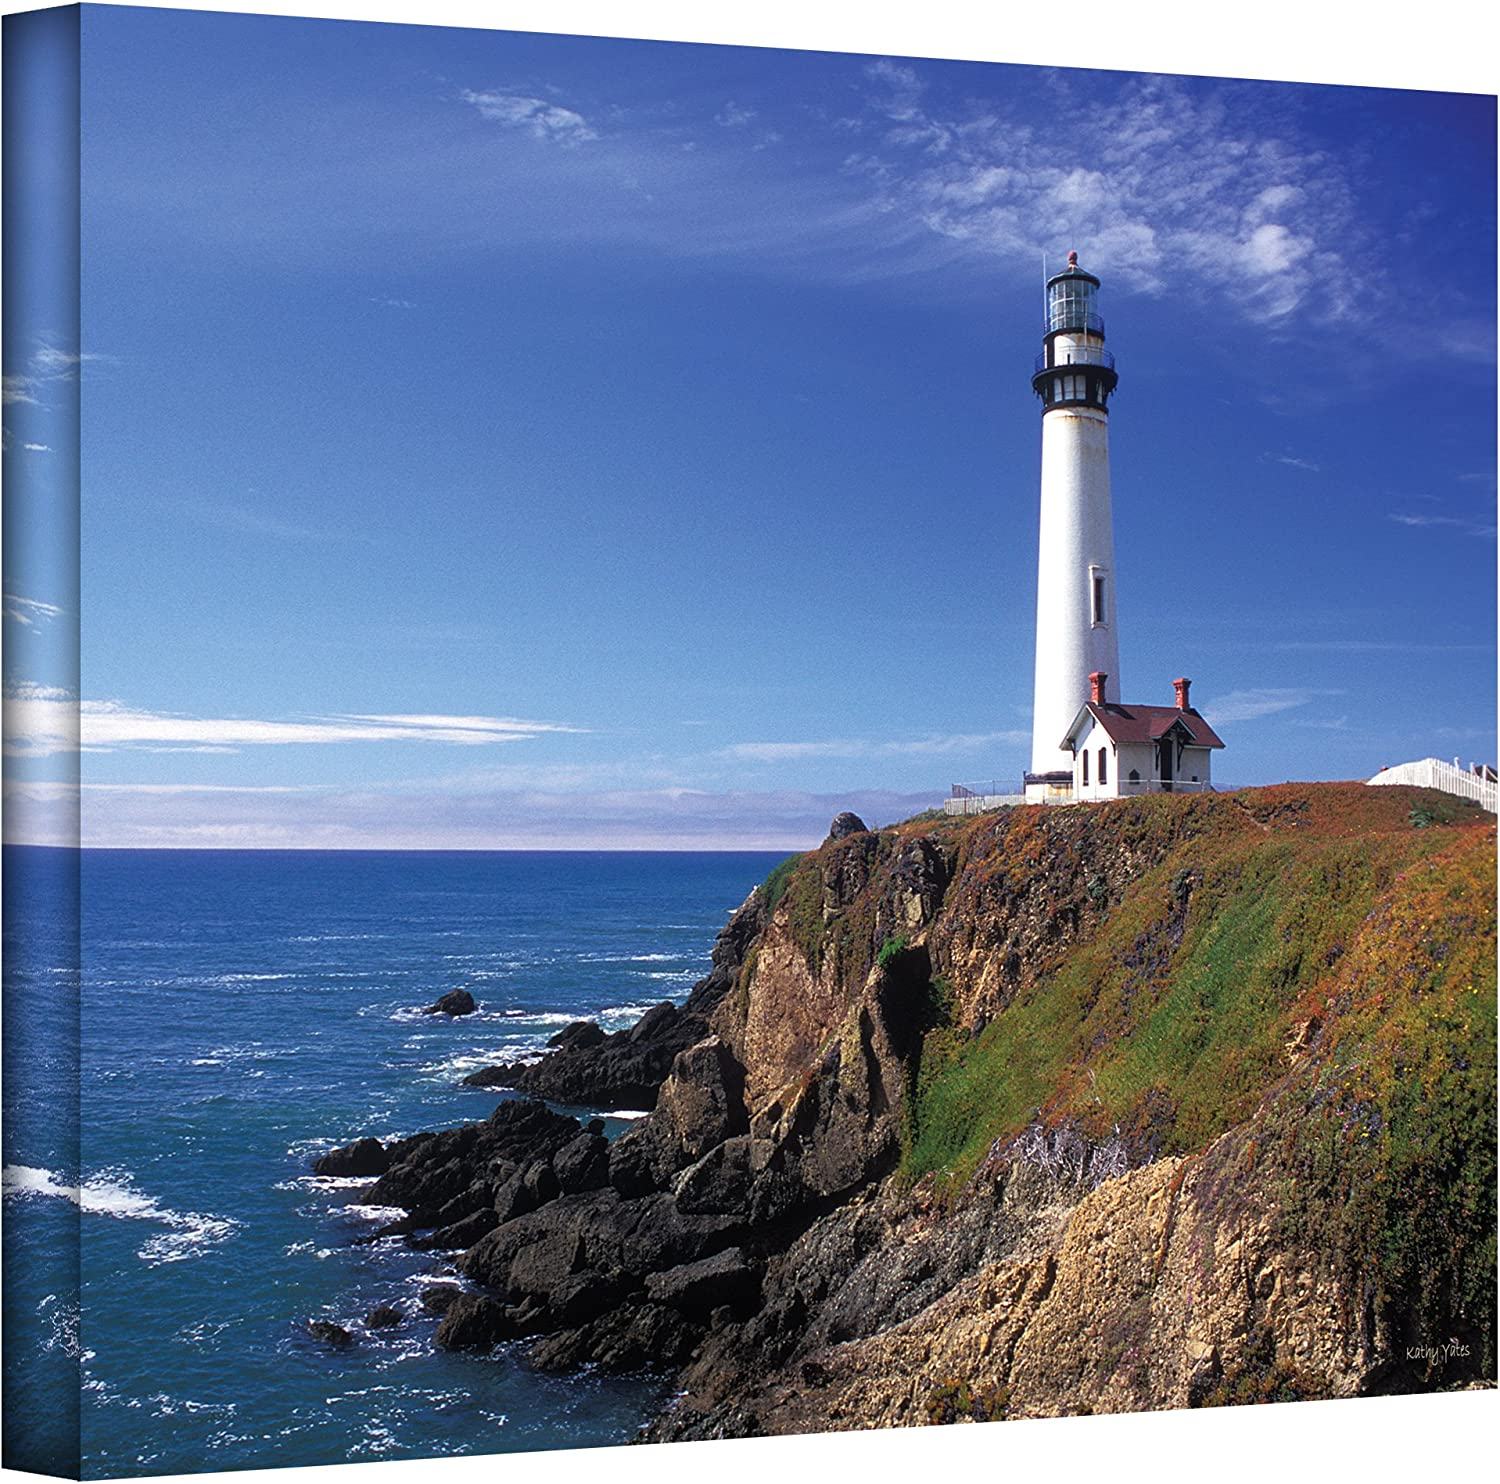 ArtWall Pigeon Point Direct stock discount Lighthouse Gallery Kathy Canvas by Max 53% OFF Wrapped